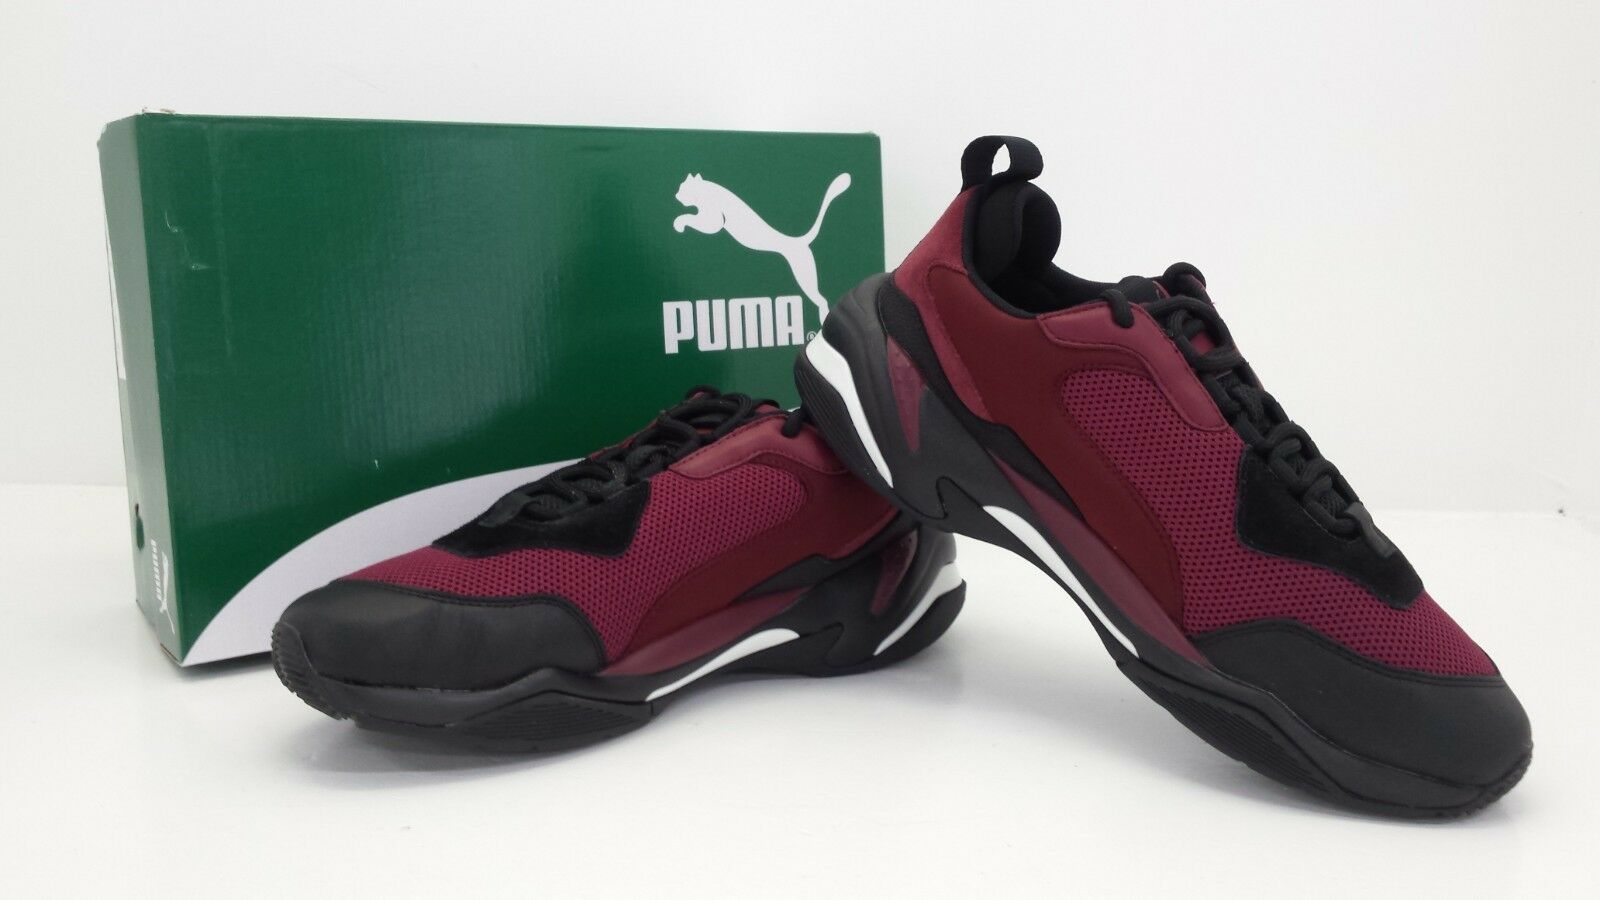 PUMA THUNDER SPECTRA Turnschuhe schwarz PORT 367516 03 - BRAND NEW IN BOX